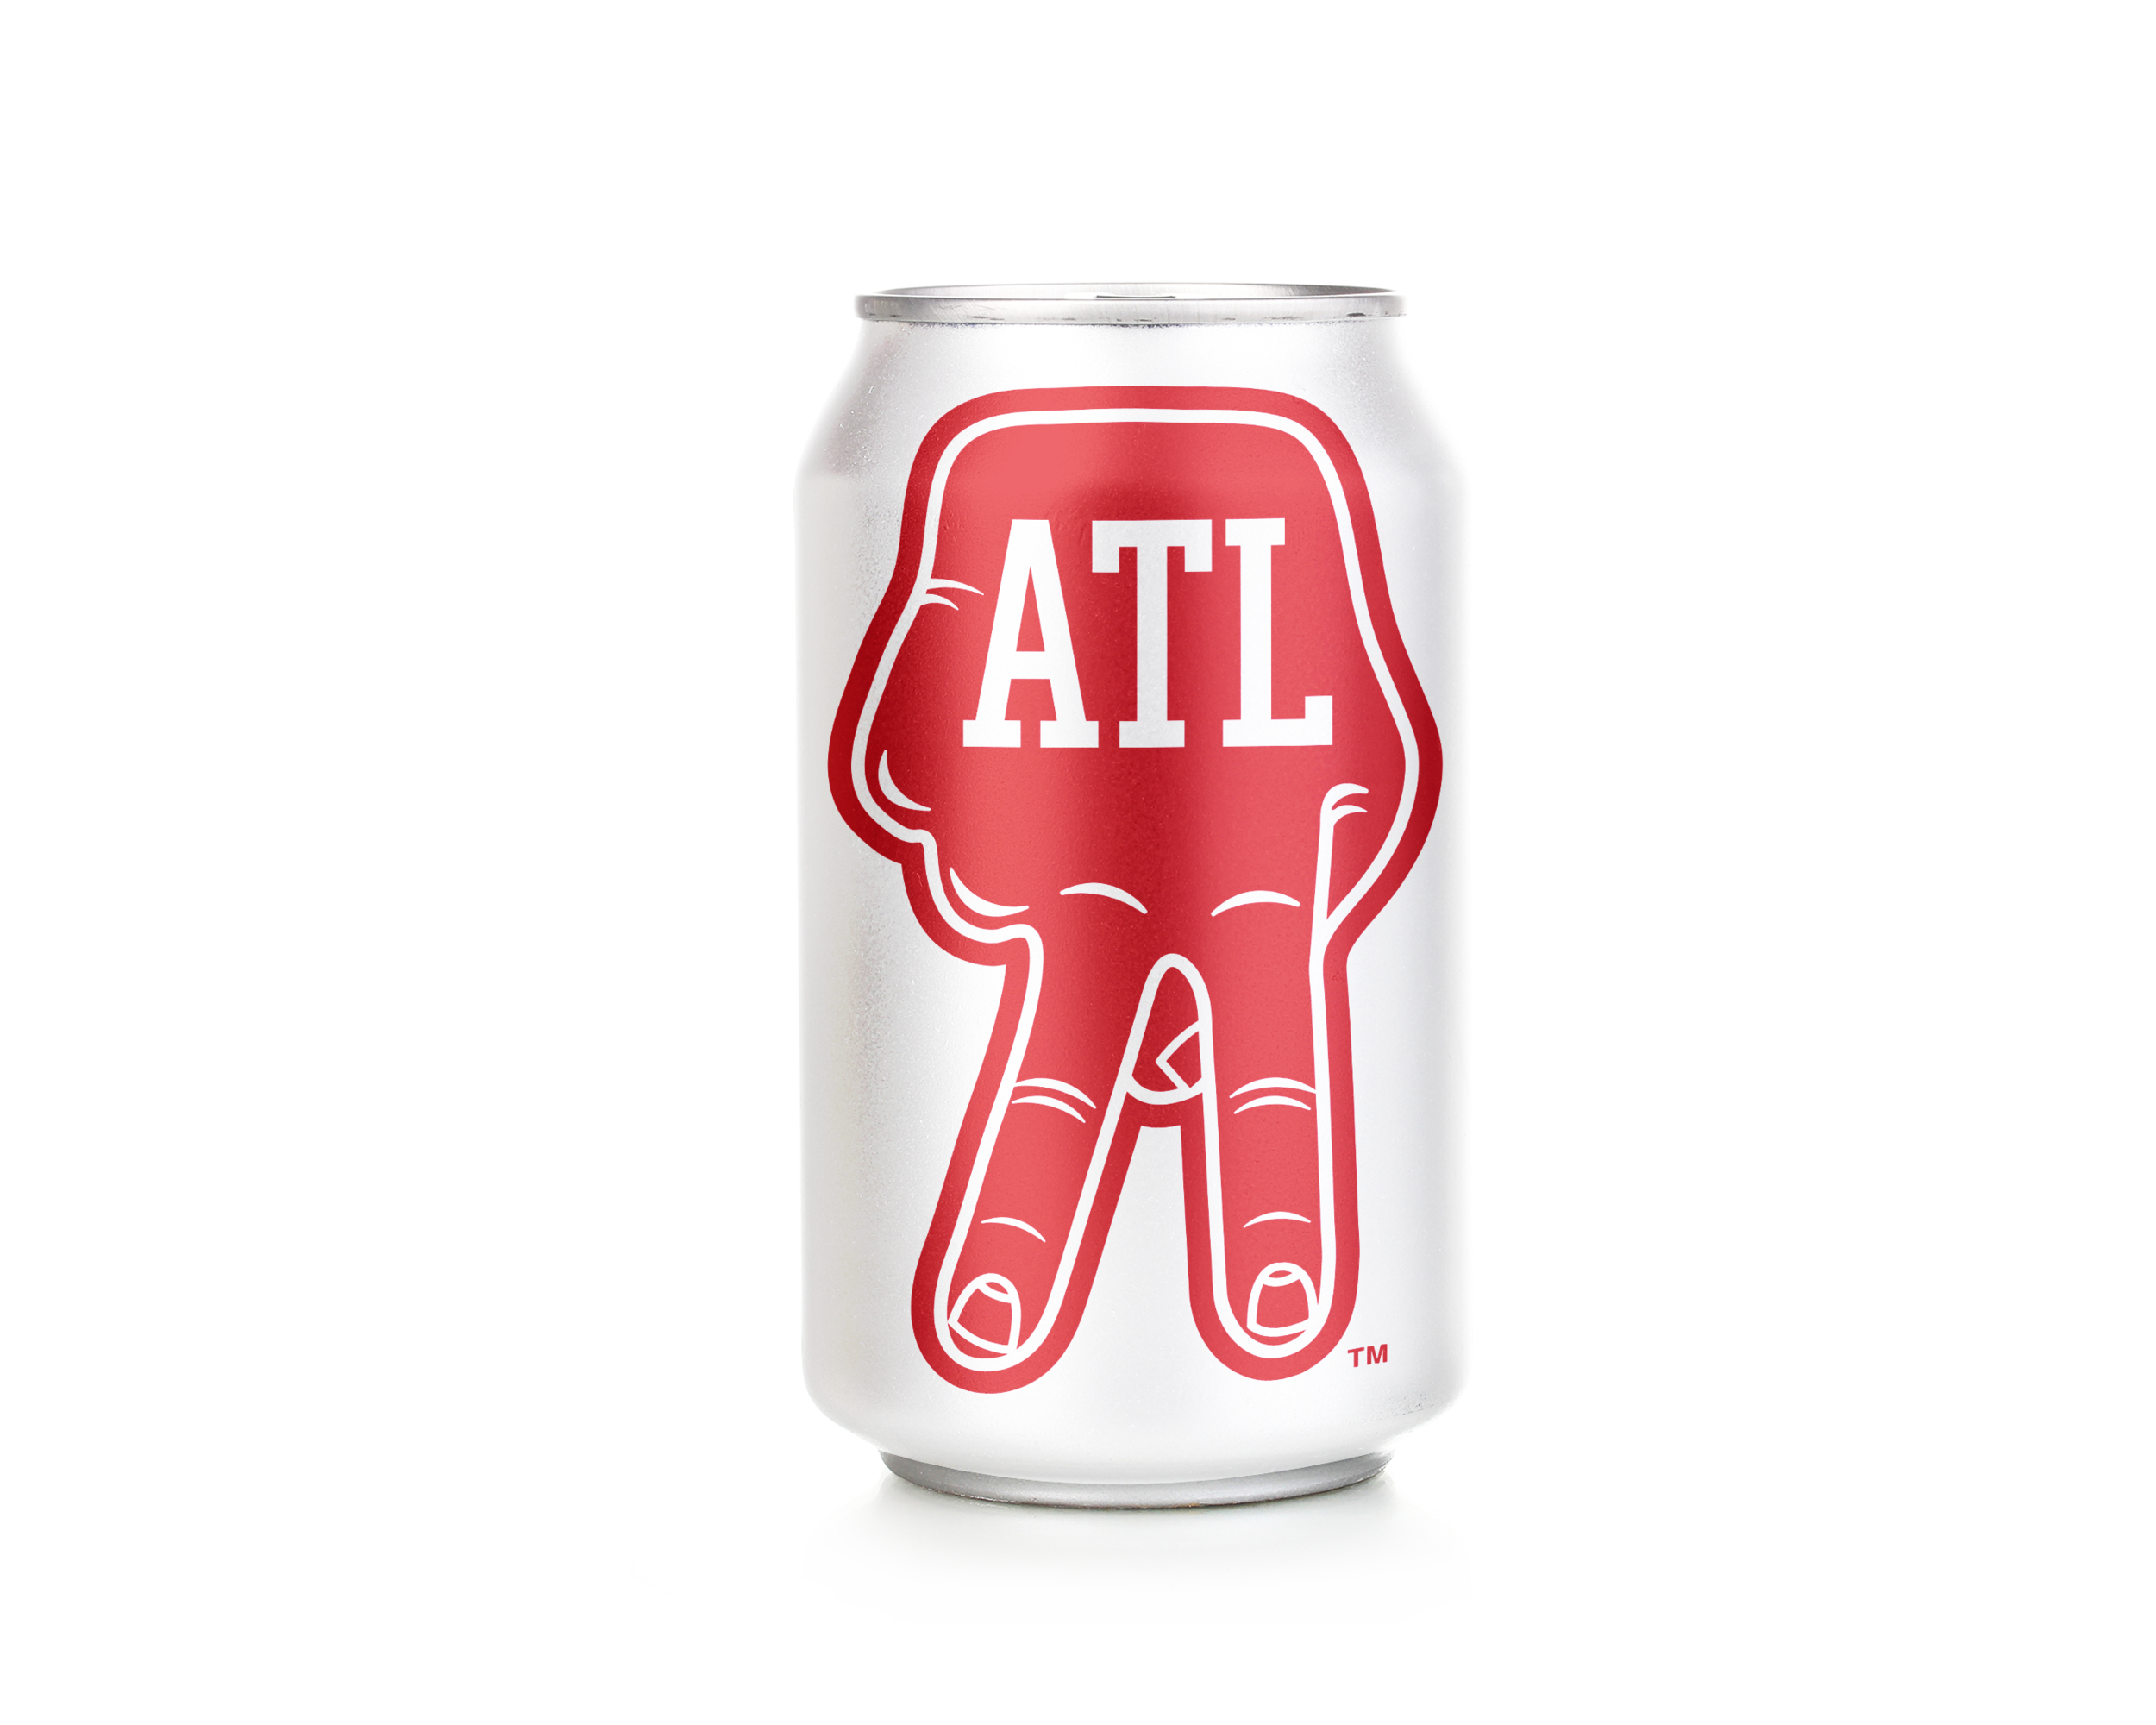 ATL Easy Ale - Pale Ale5.5% ABVThe craft beer for everyone, especially everyone in the ATL. A lightly-hopped, unbitter pale ale with just enough sweetness to help you Hold It Down, A-Town. Created originally with our friends at Mercedes-Benz Stadium.